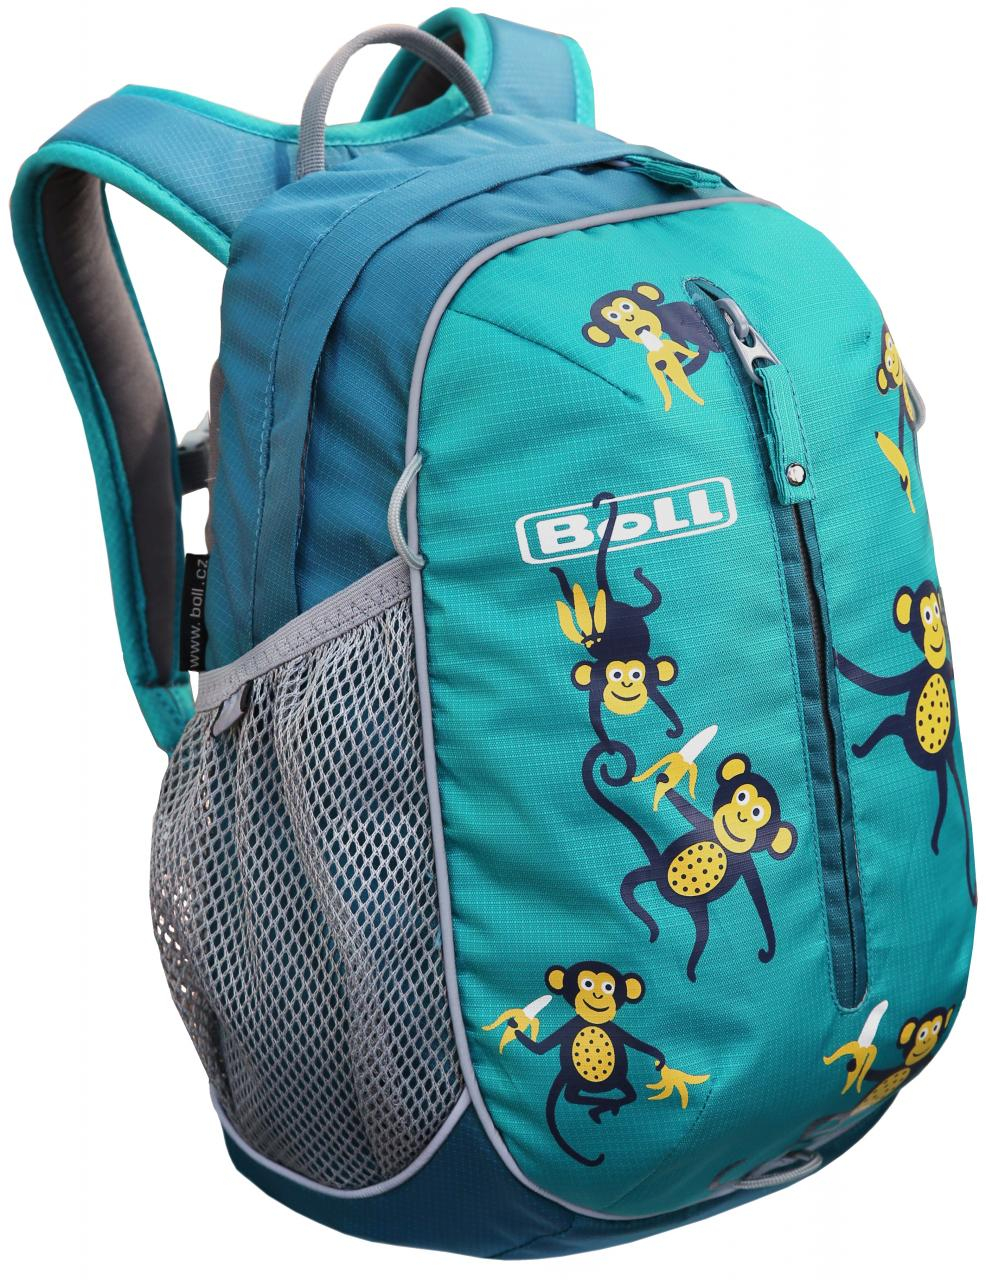 Boll batoh Roo 12L turquoise